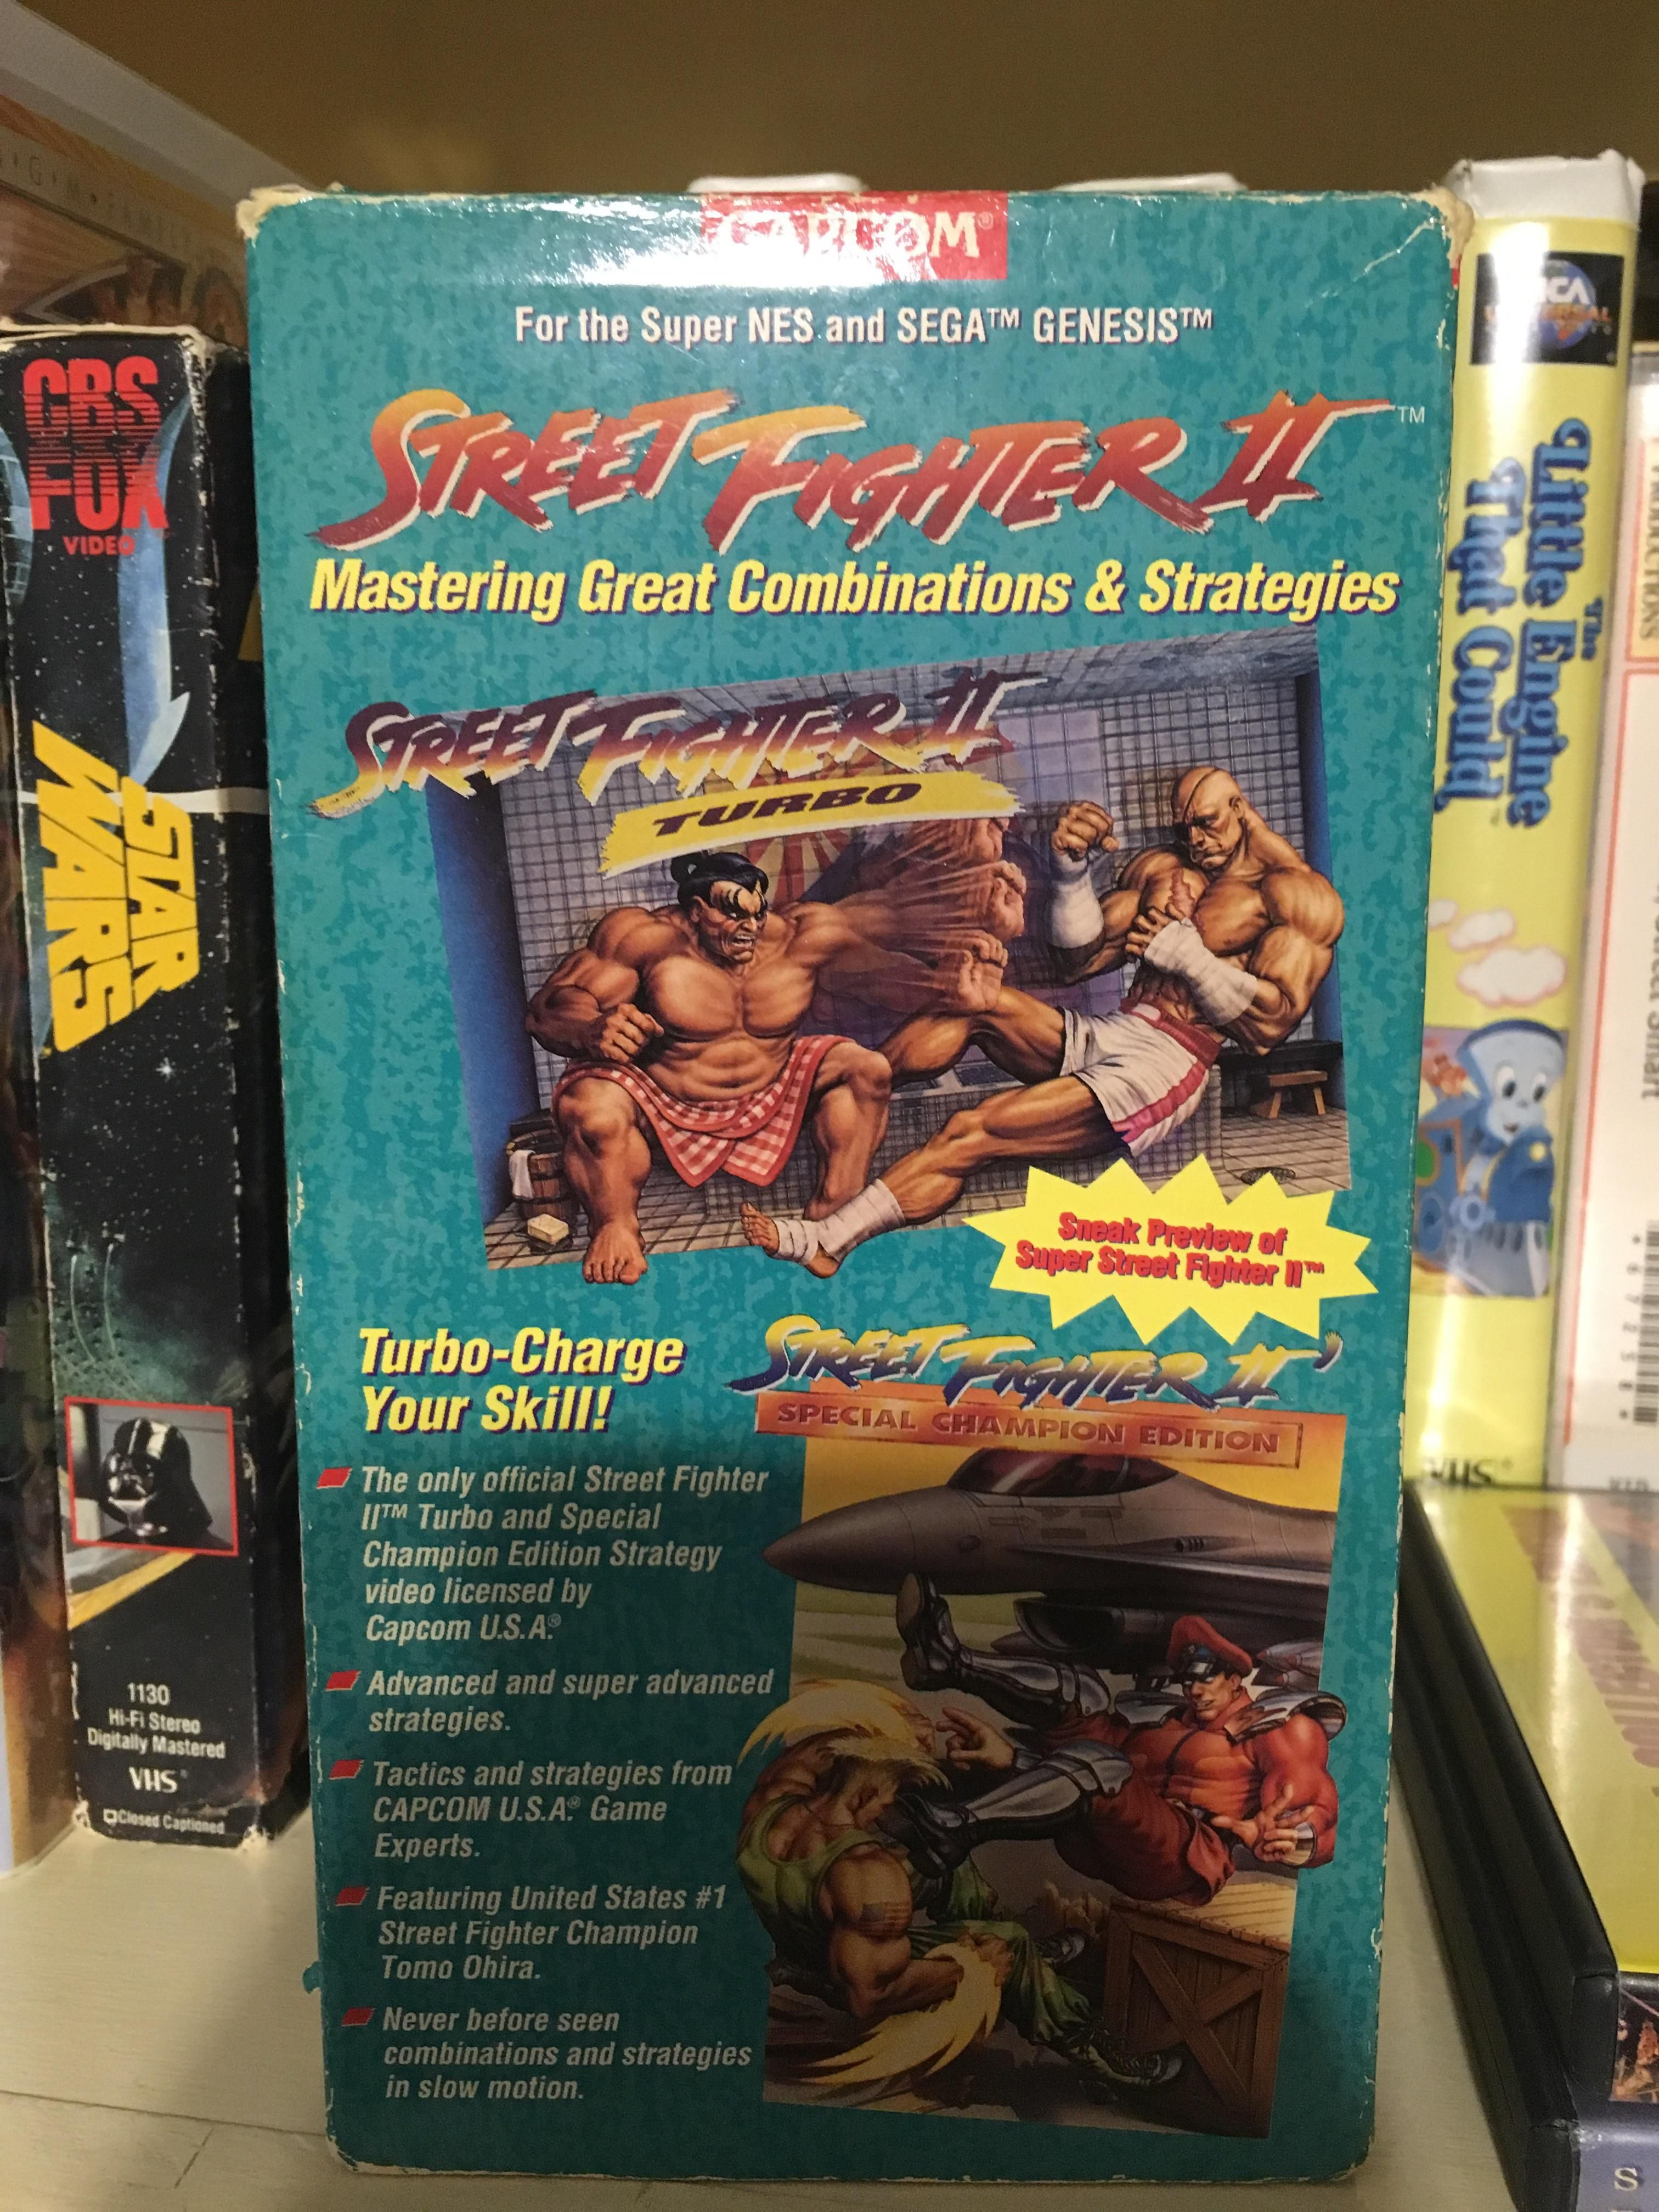 found this awesome street fighter 2 strategy vhs tape at goodwill